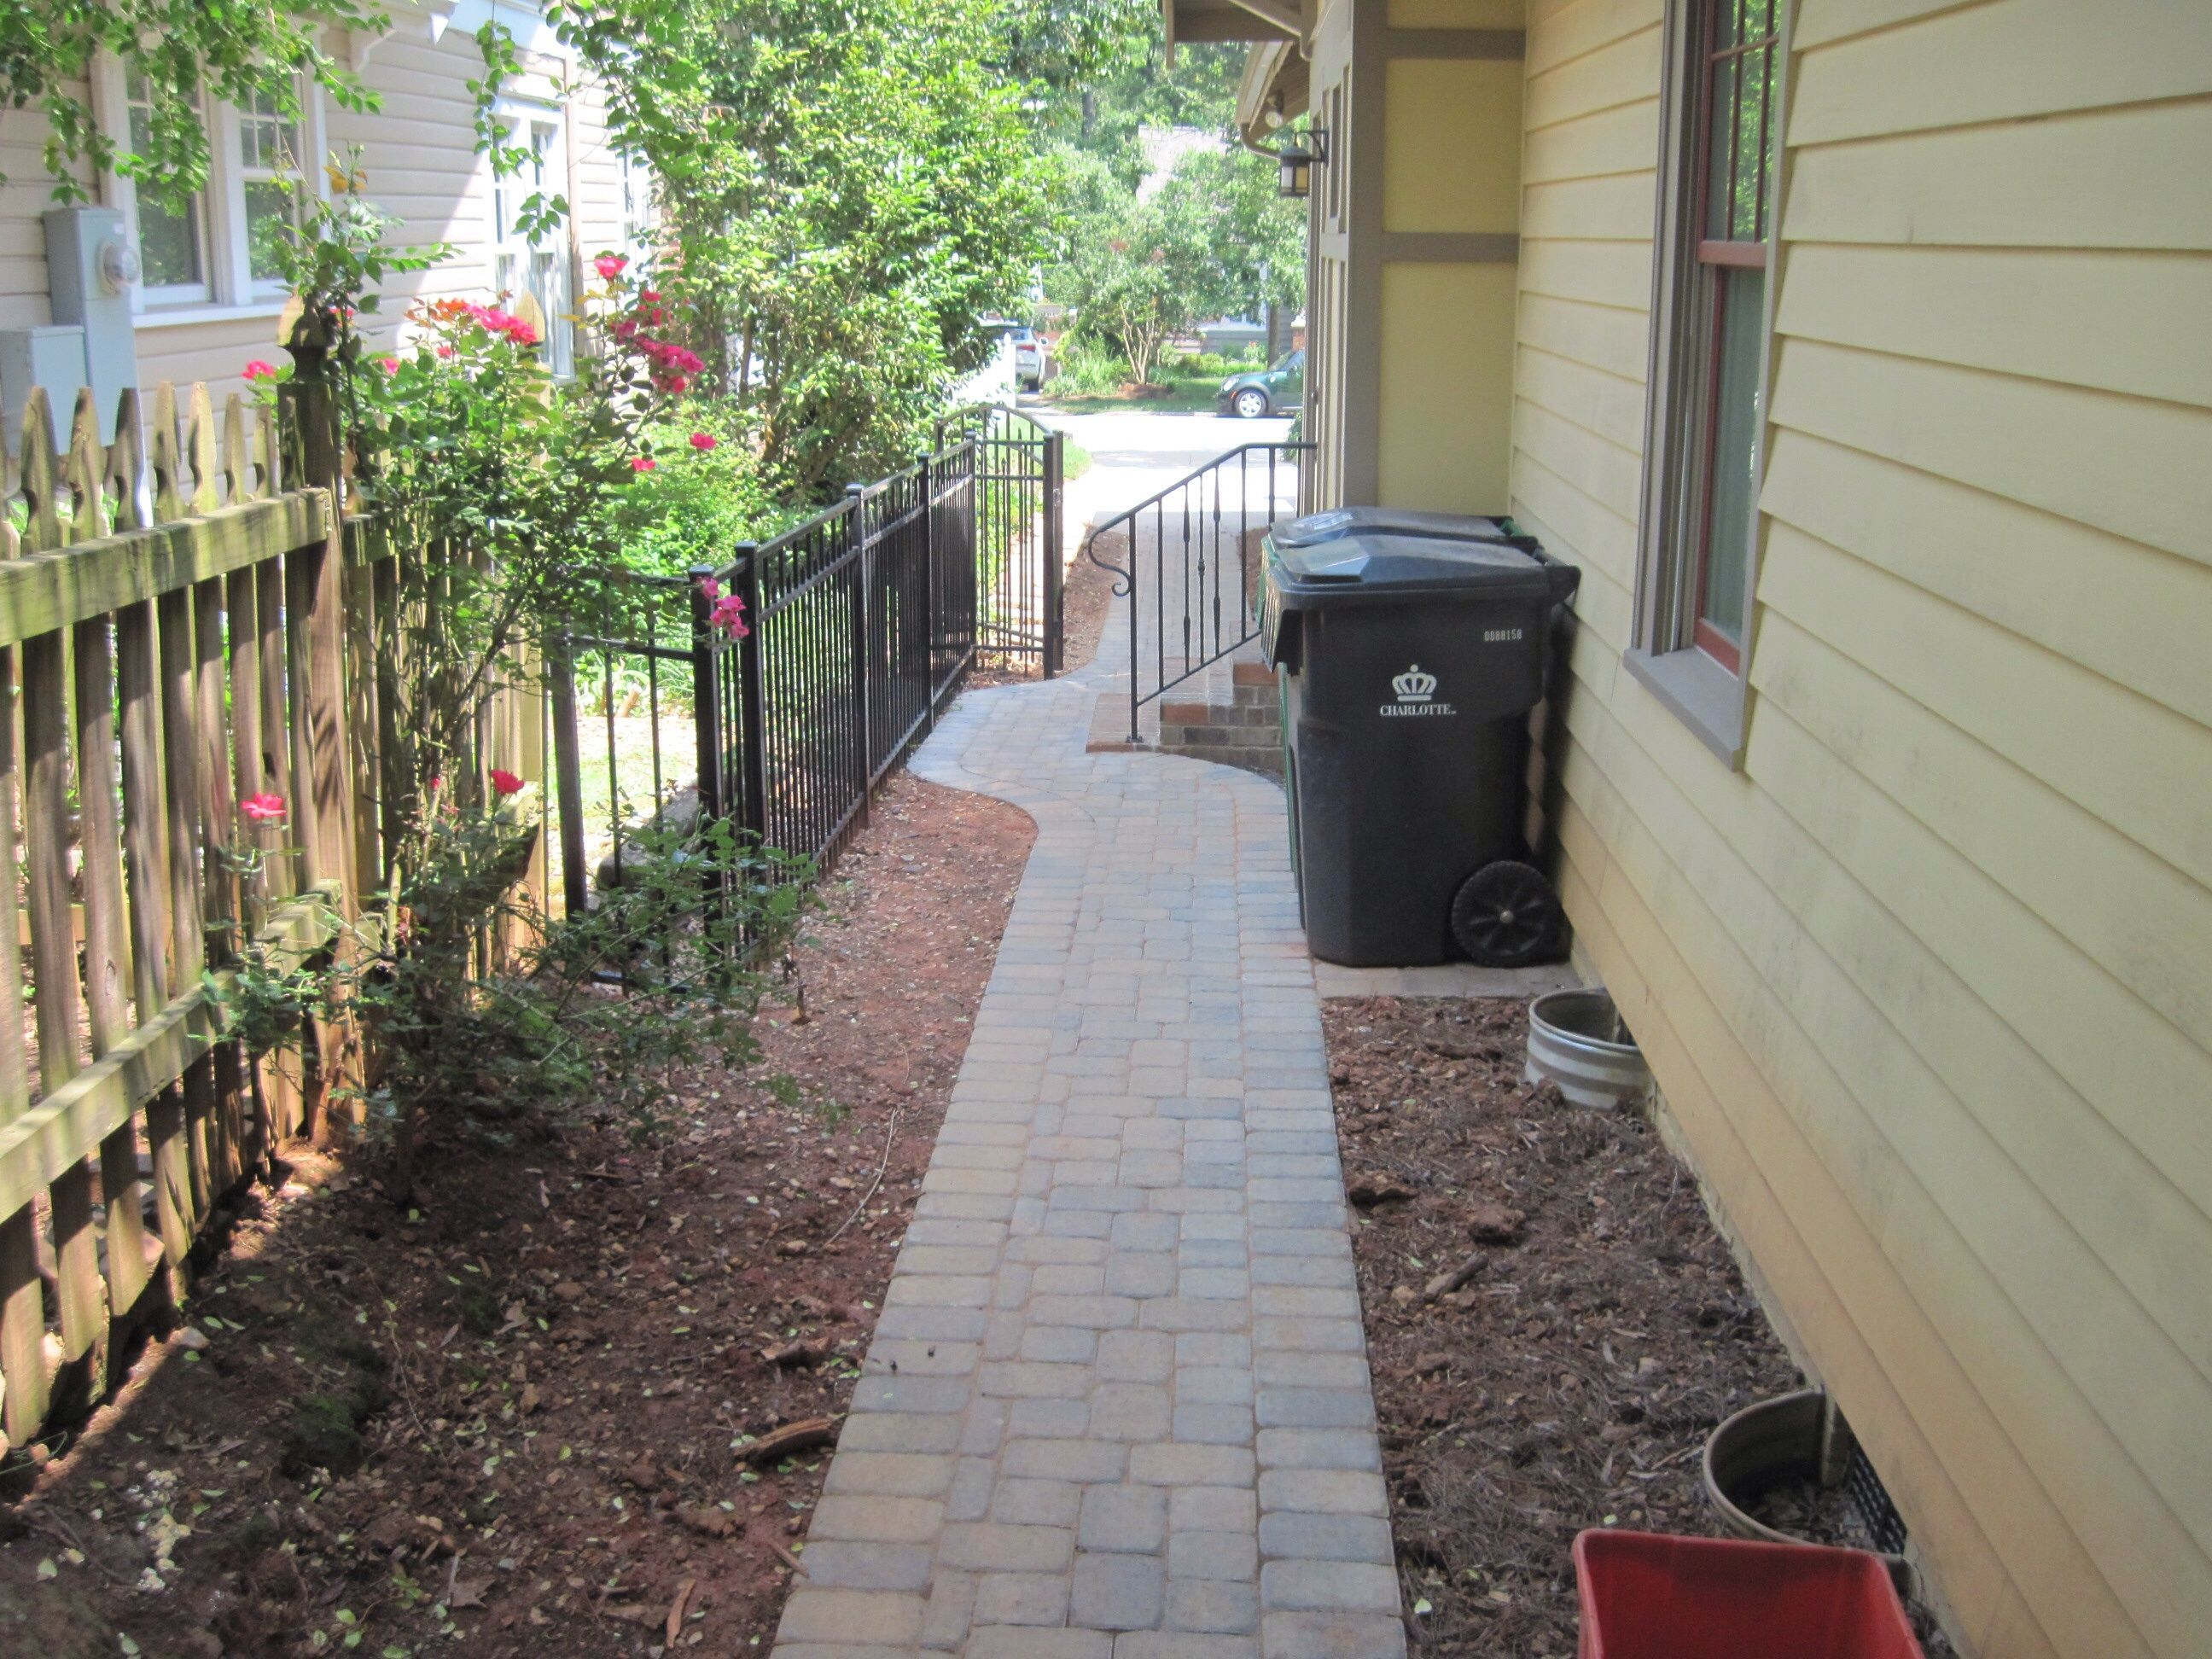 paver walkway to get from driveway to back patio with a park